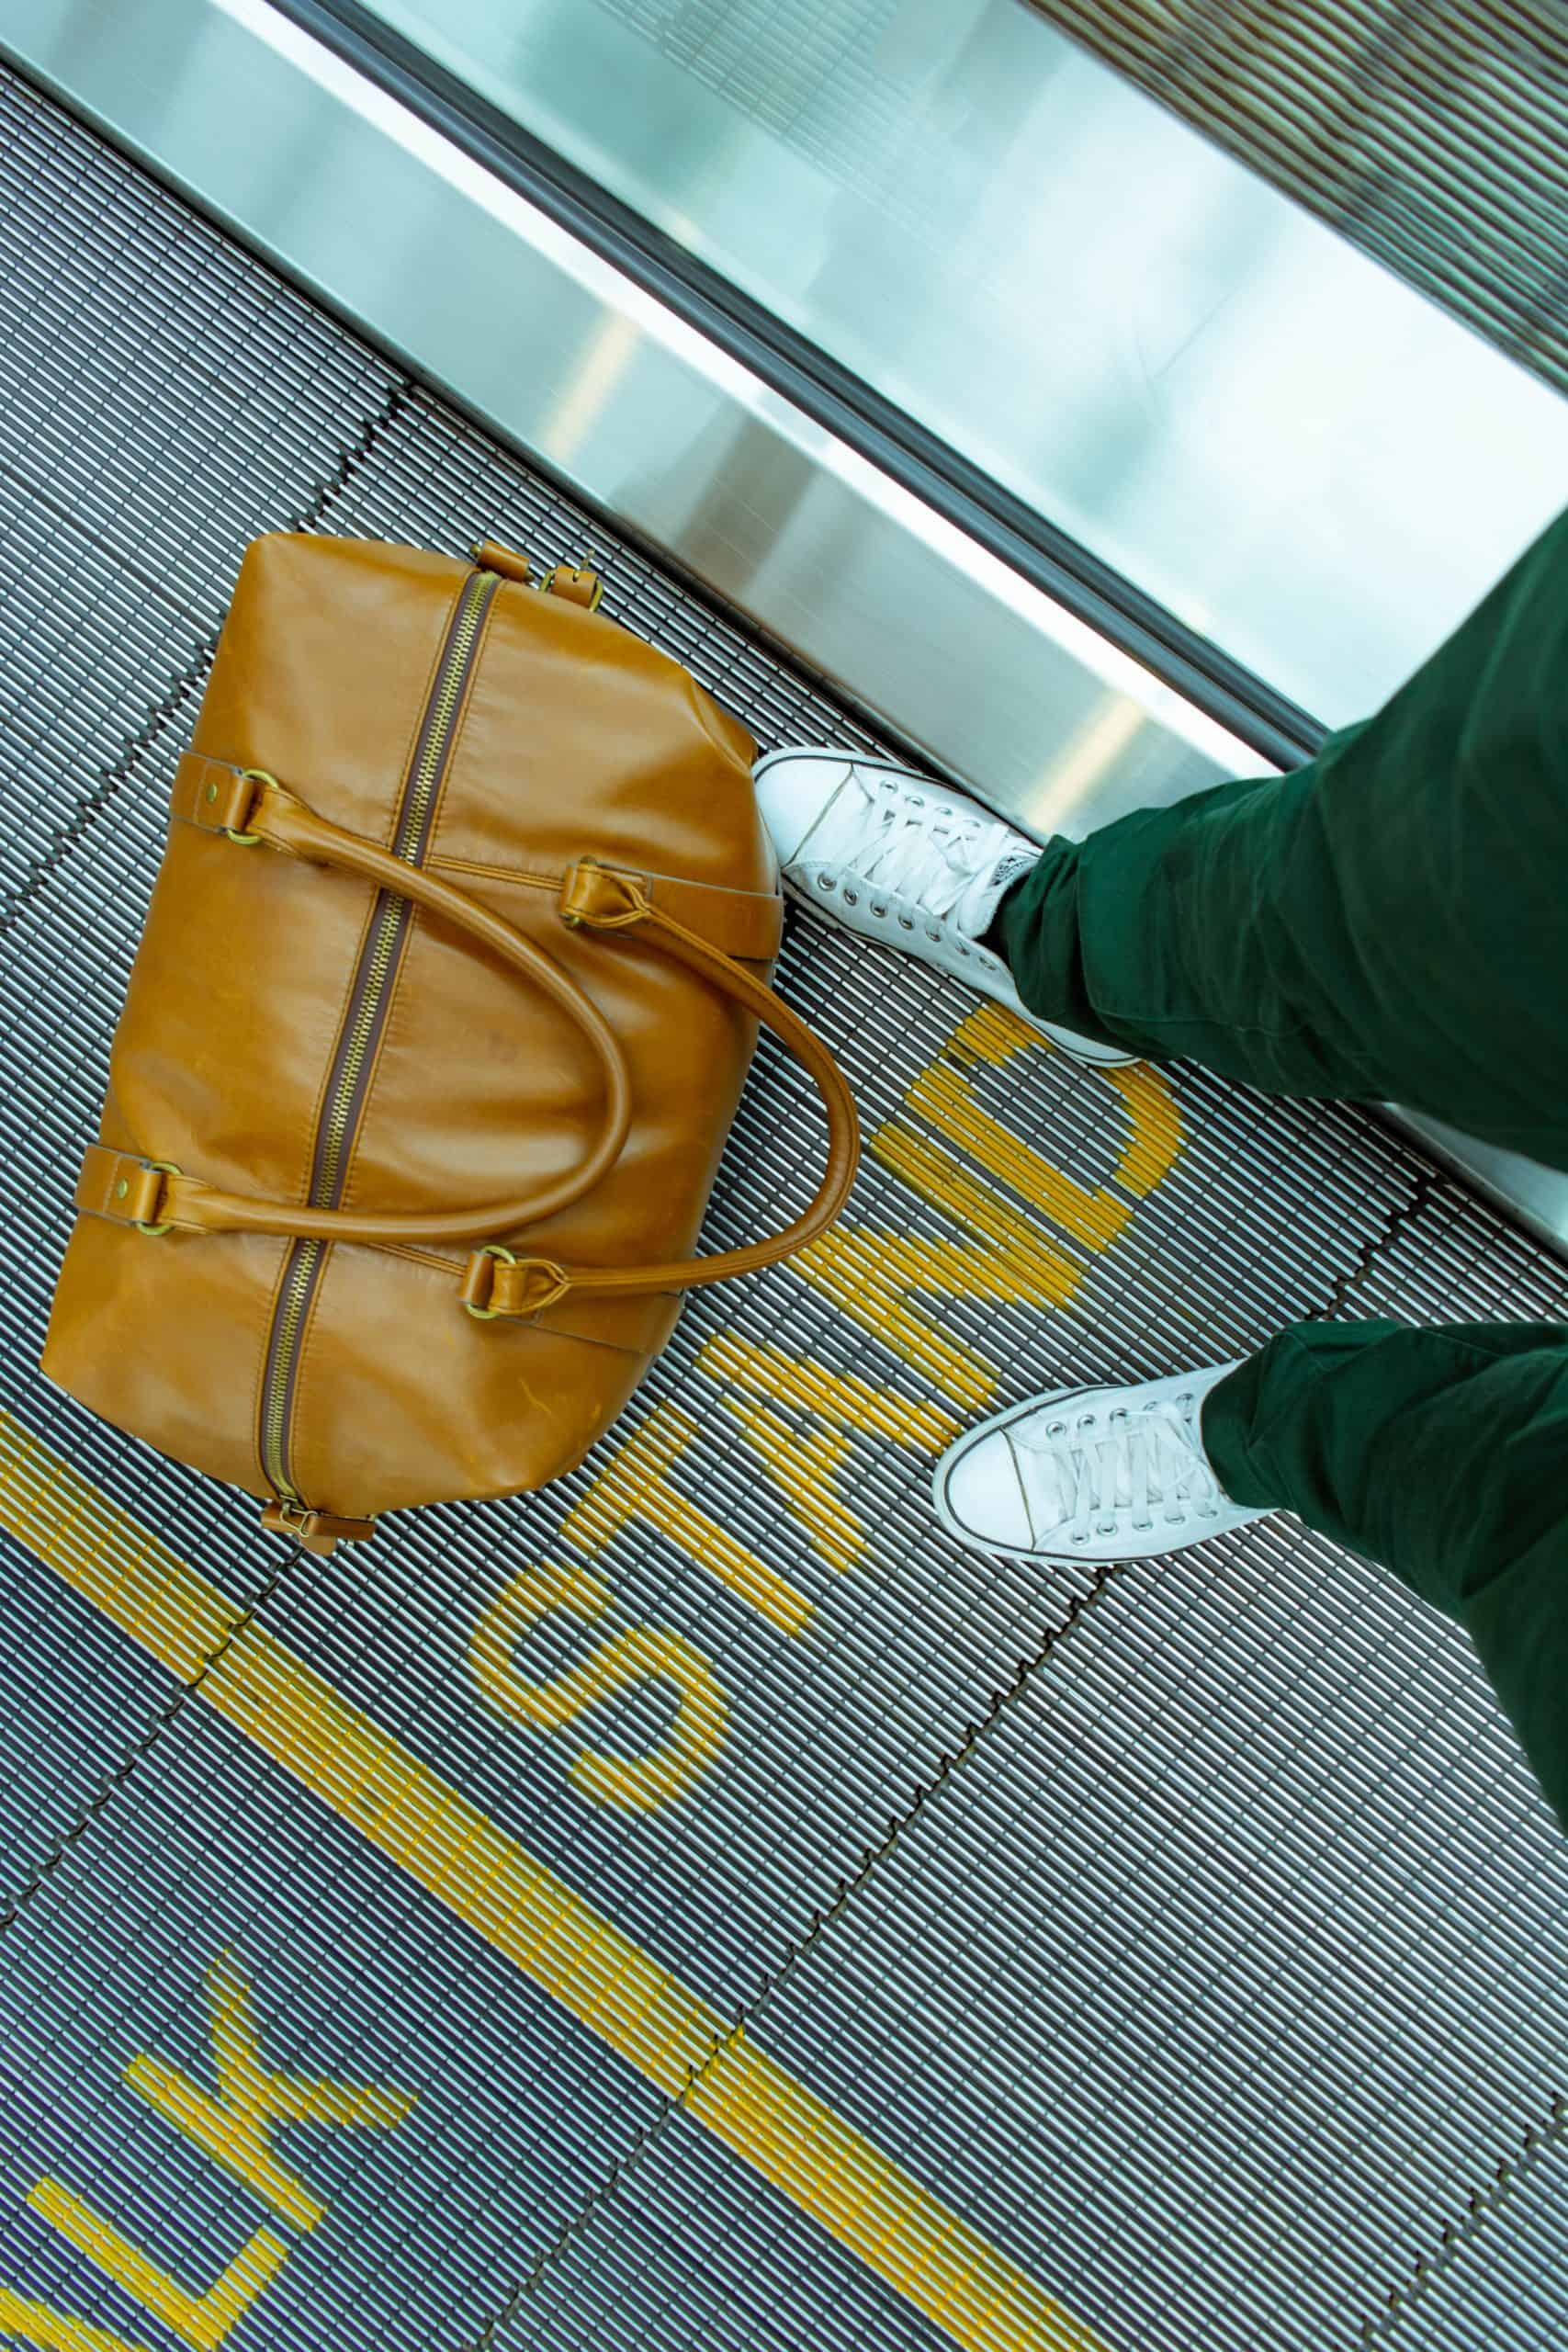 Simple Bags, A Great Choice for Travel